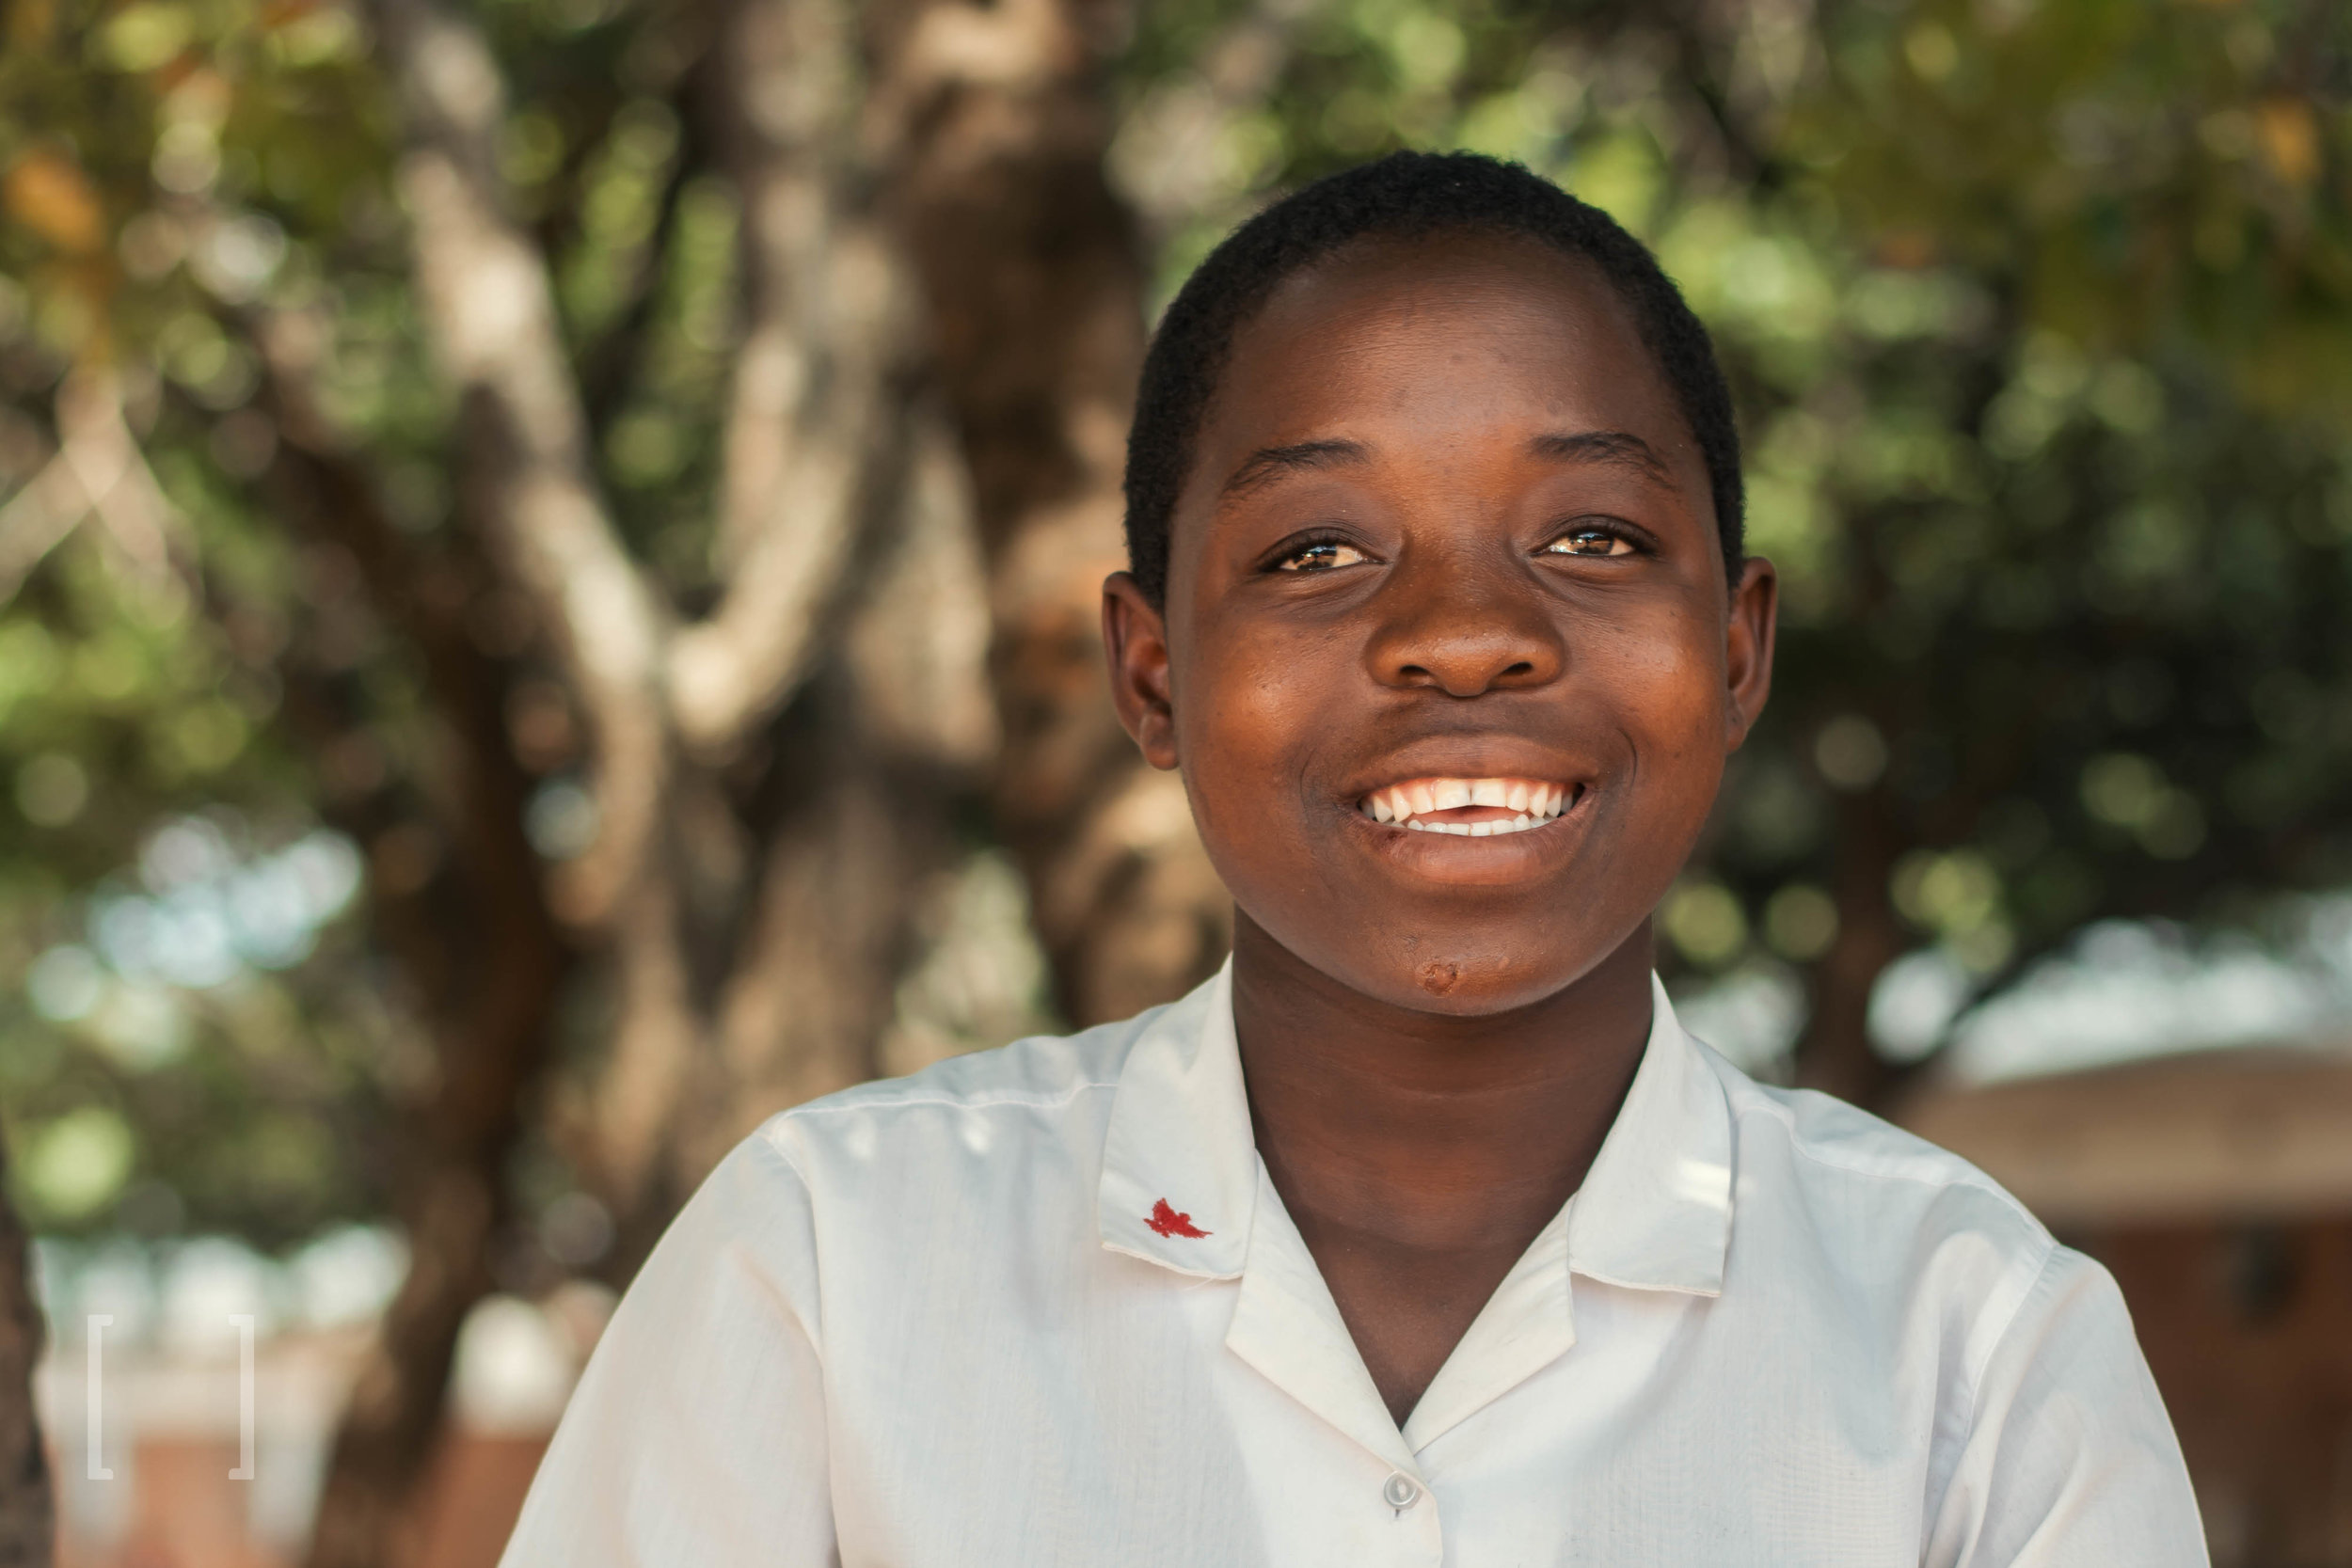 Rose - Rose was born February 23, 2001. She lost her father and her mother is very ill. She works hard in school and would like to become a nurse. Rose loves playing netball and is great at teamwork. Sponsor Rose today!